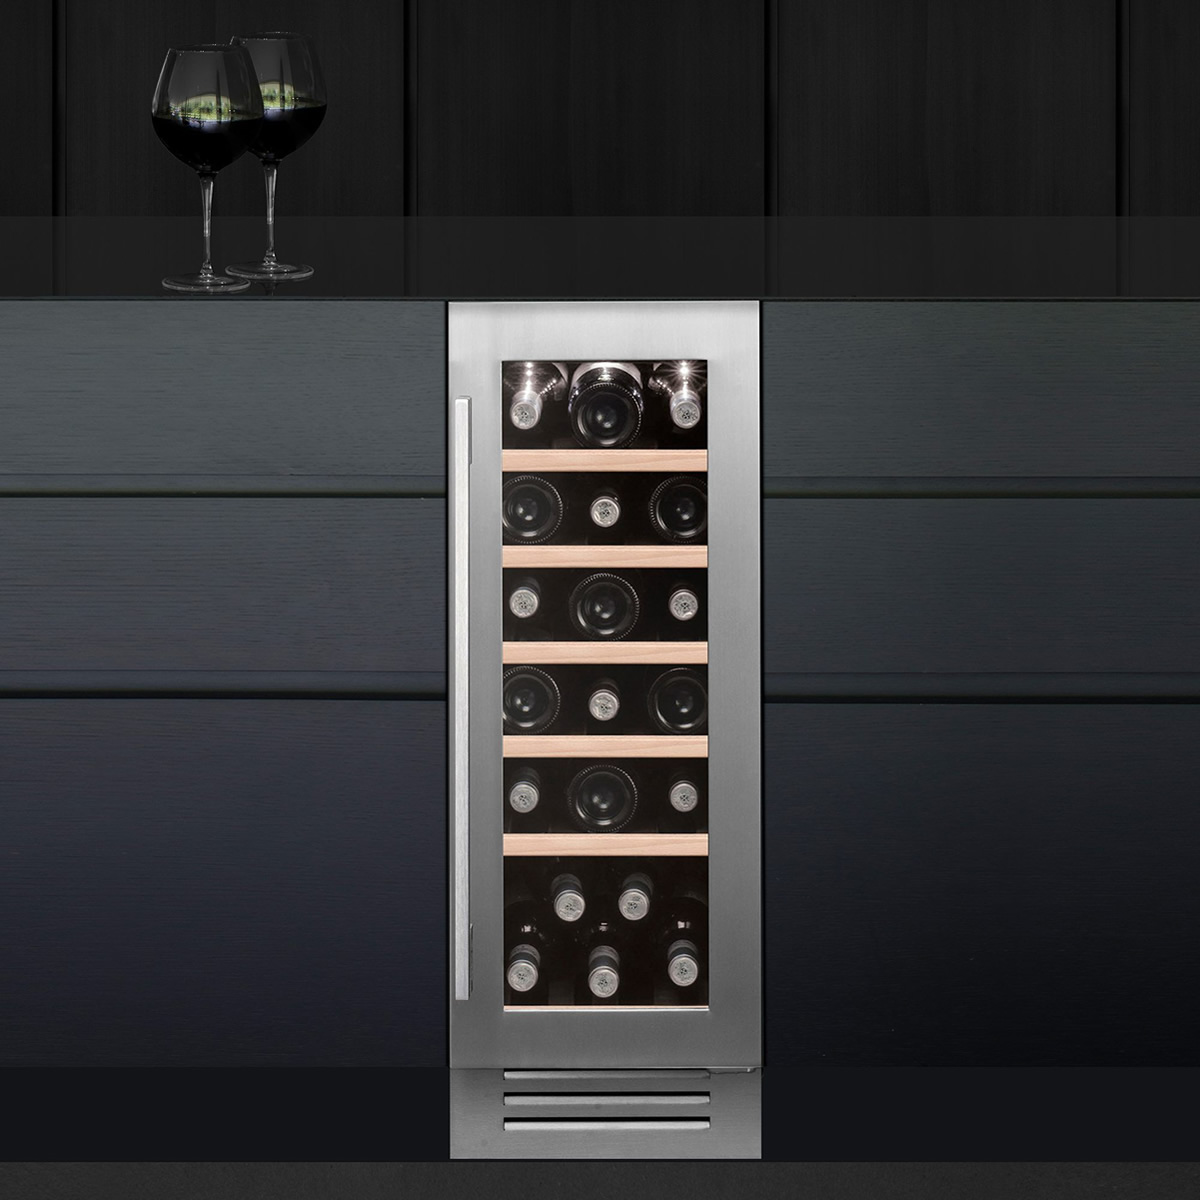 19 Bottle Capacity Under-Counter Wine Cooler S/Steel